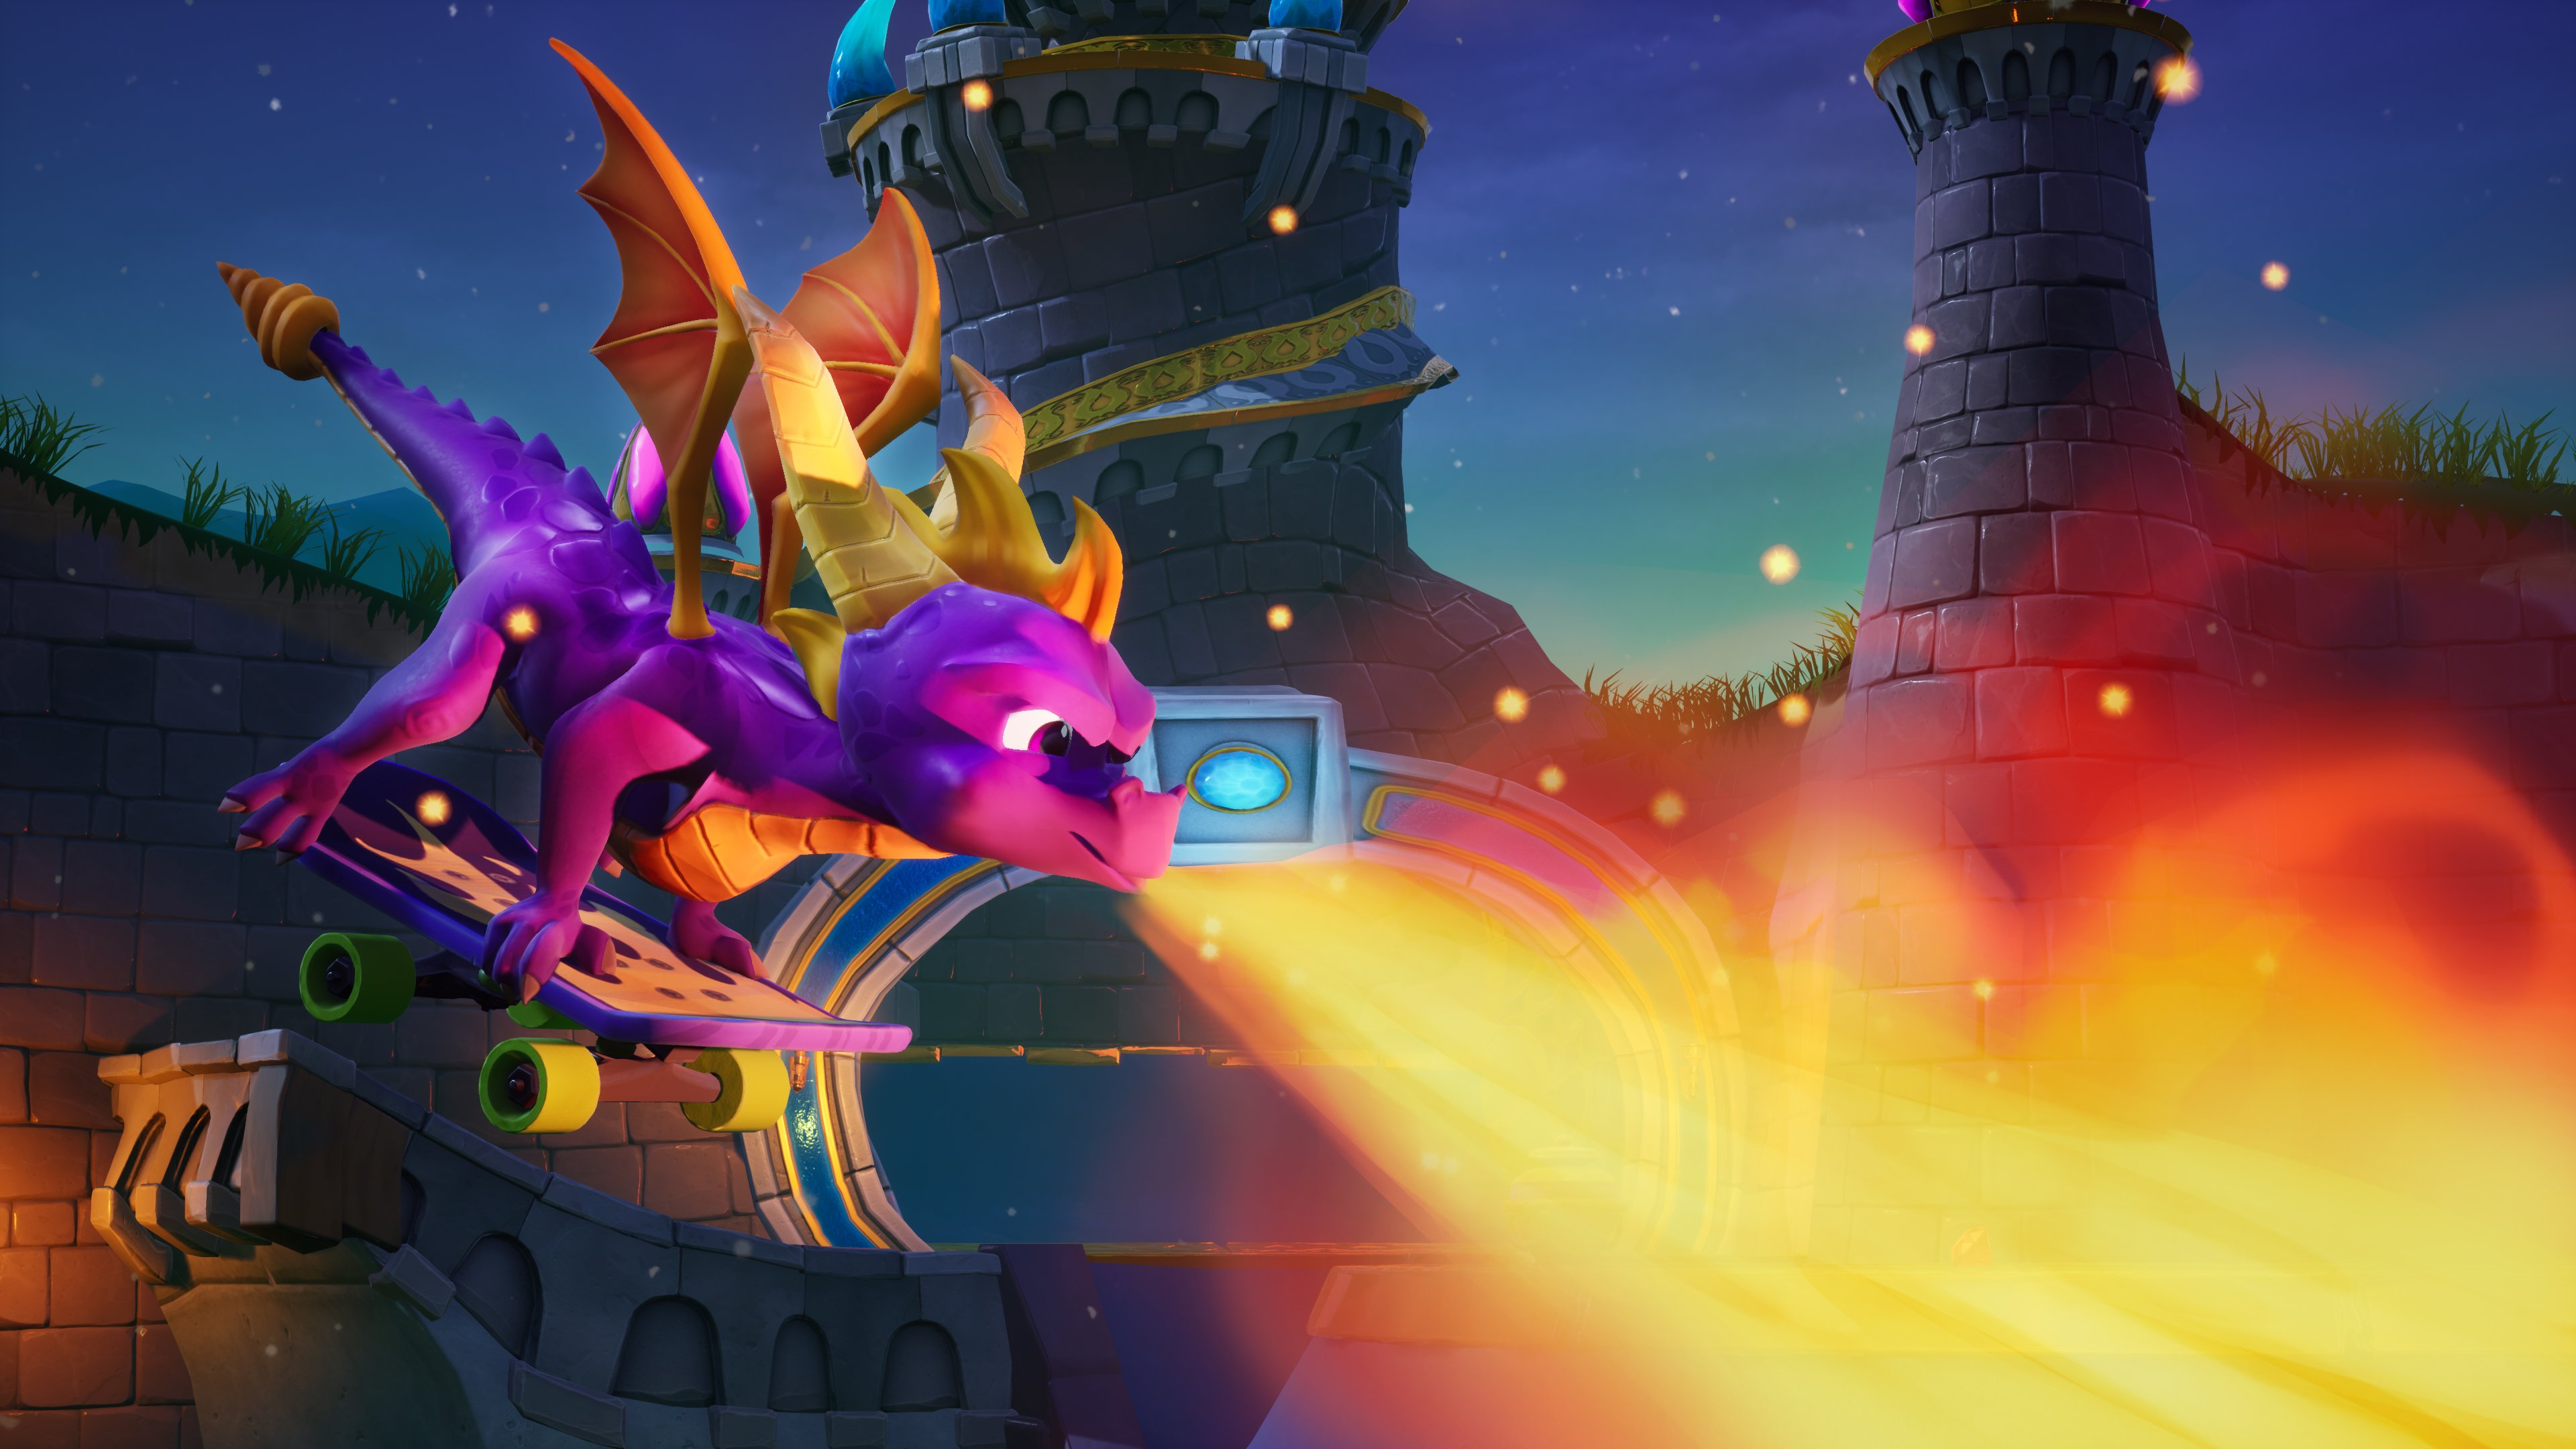 Spyro Reignited Trilogy Sbarca A Settembre Su Nintendo Switch E Steam 1 - Hynerd.it